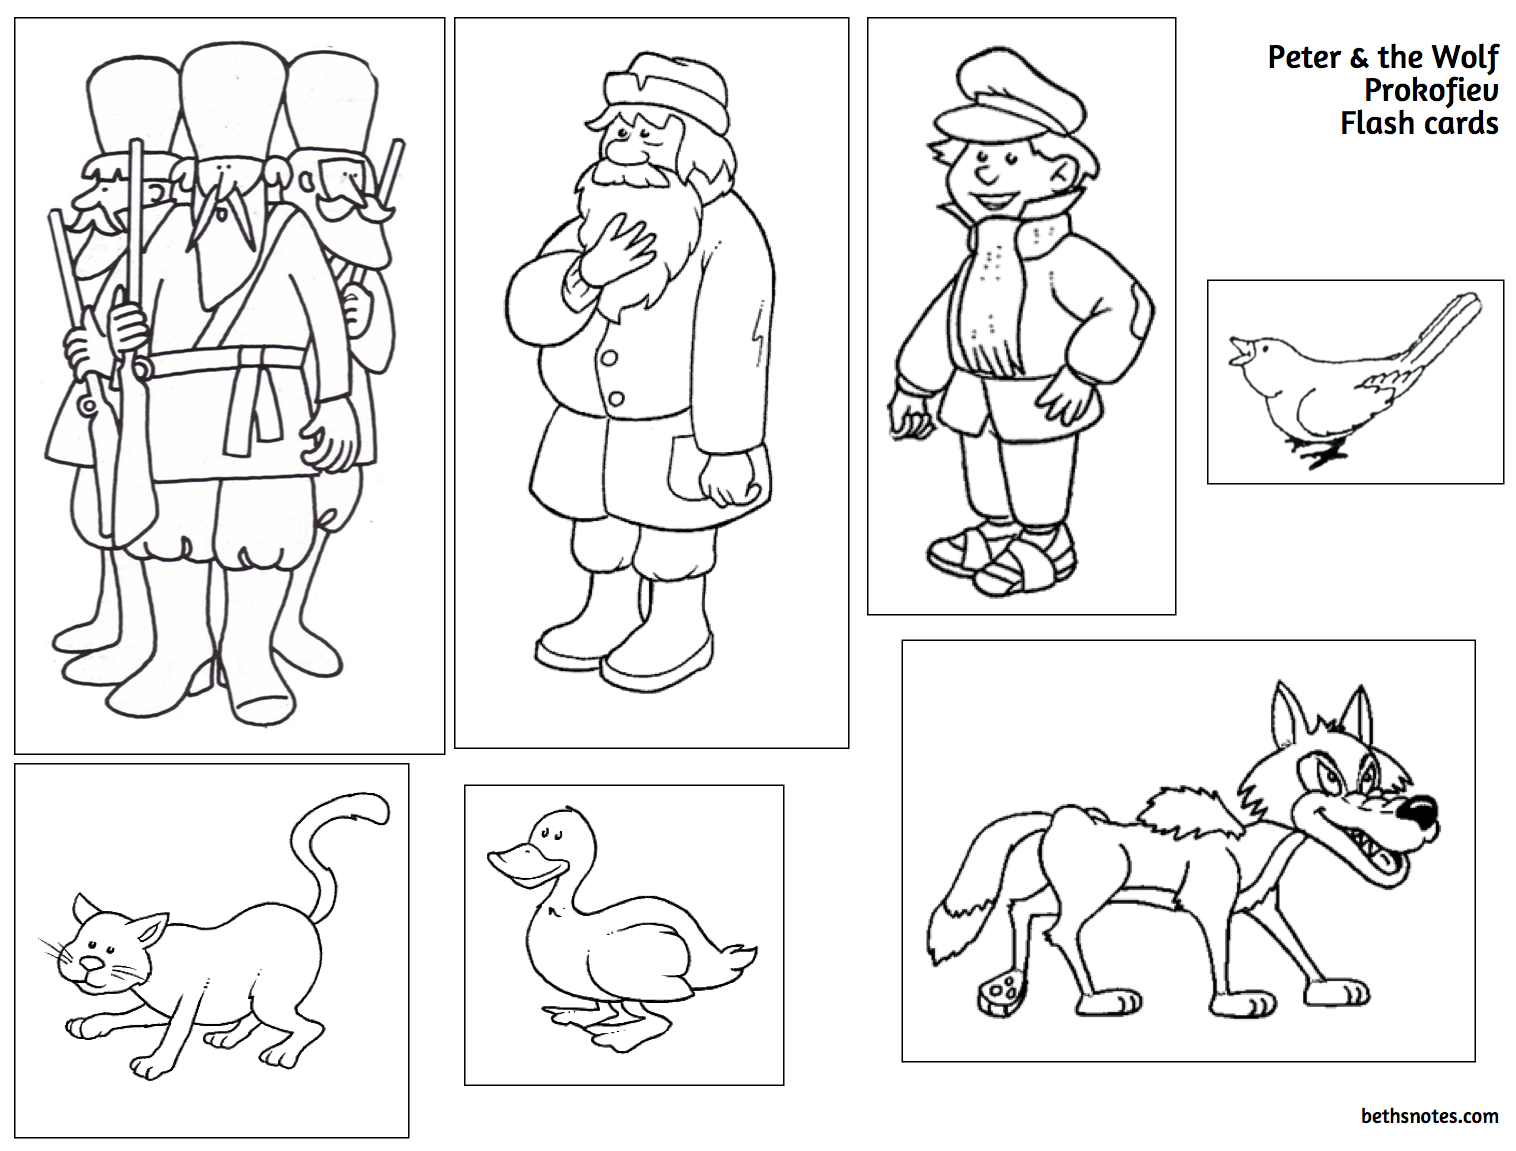 worksheet Peter And The Wolf Worksheet 10 images about music peter and the wolf on pinterest wolves elementary love